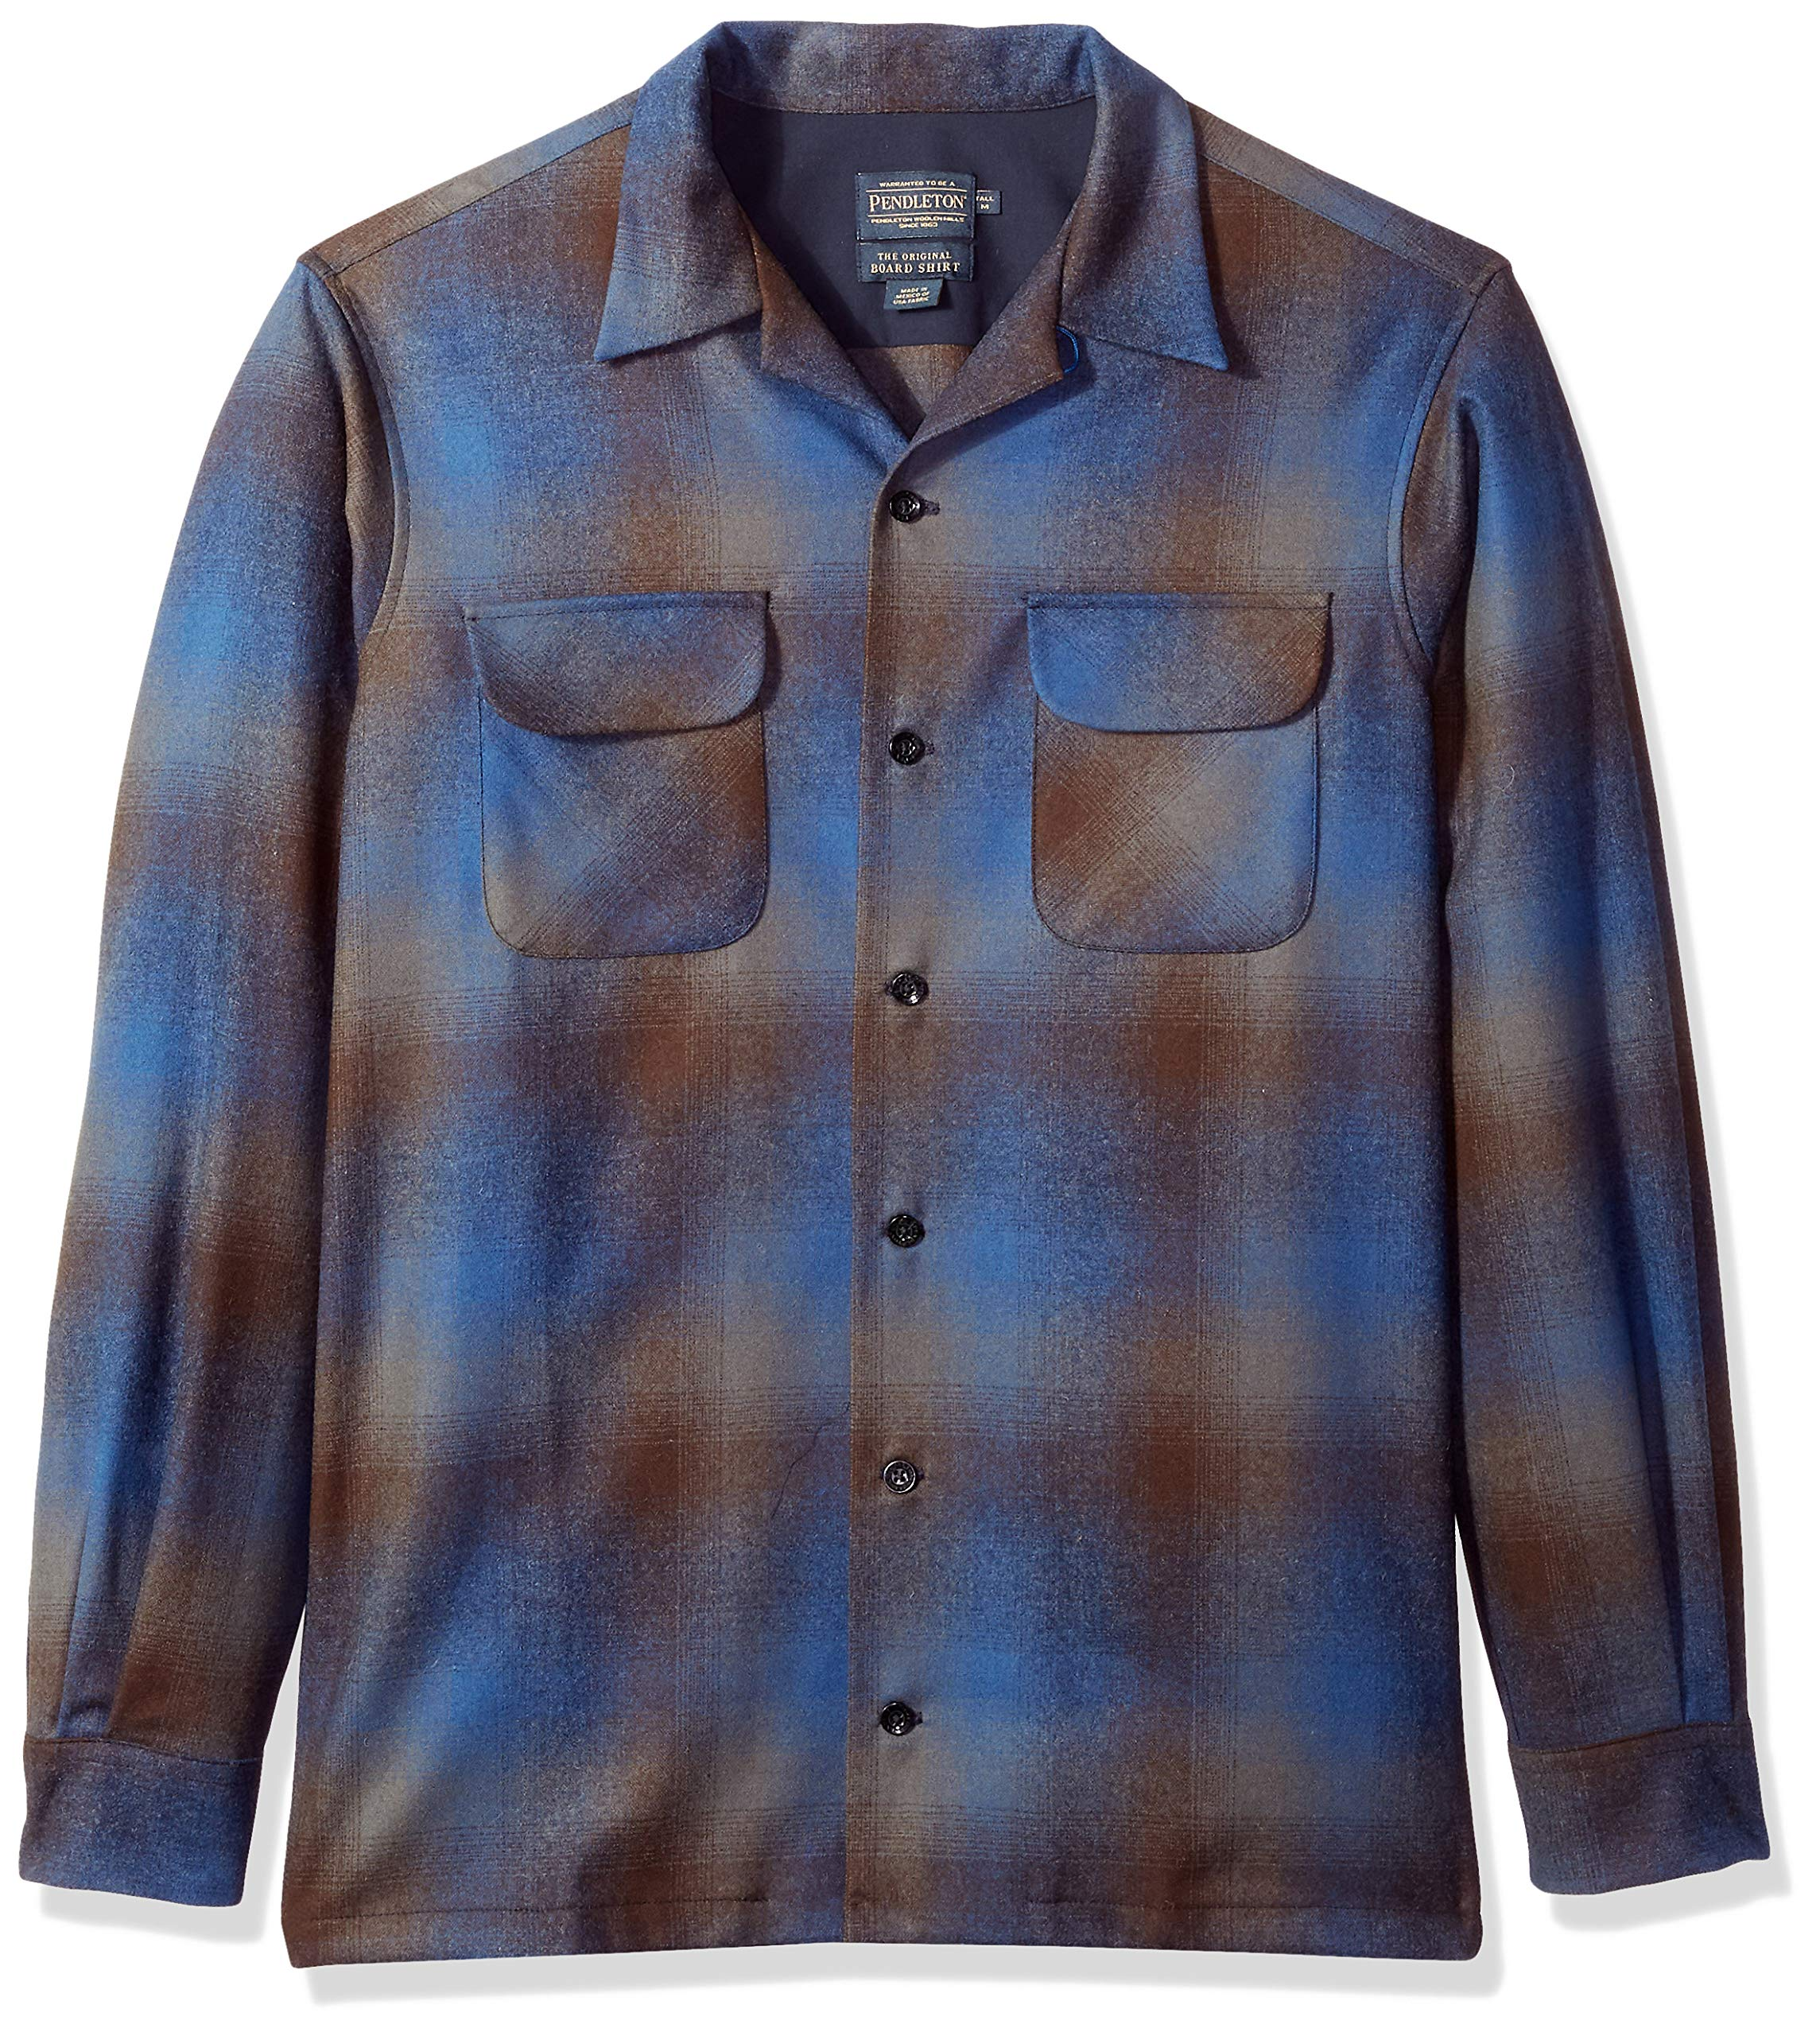 Pendleton Men's Size Big & Tall Long Sleeve Board Shirt, Brown/Blue Ombre, LG-TALL